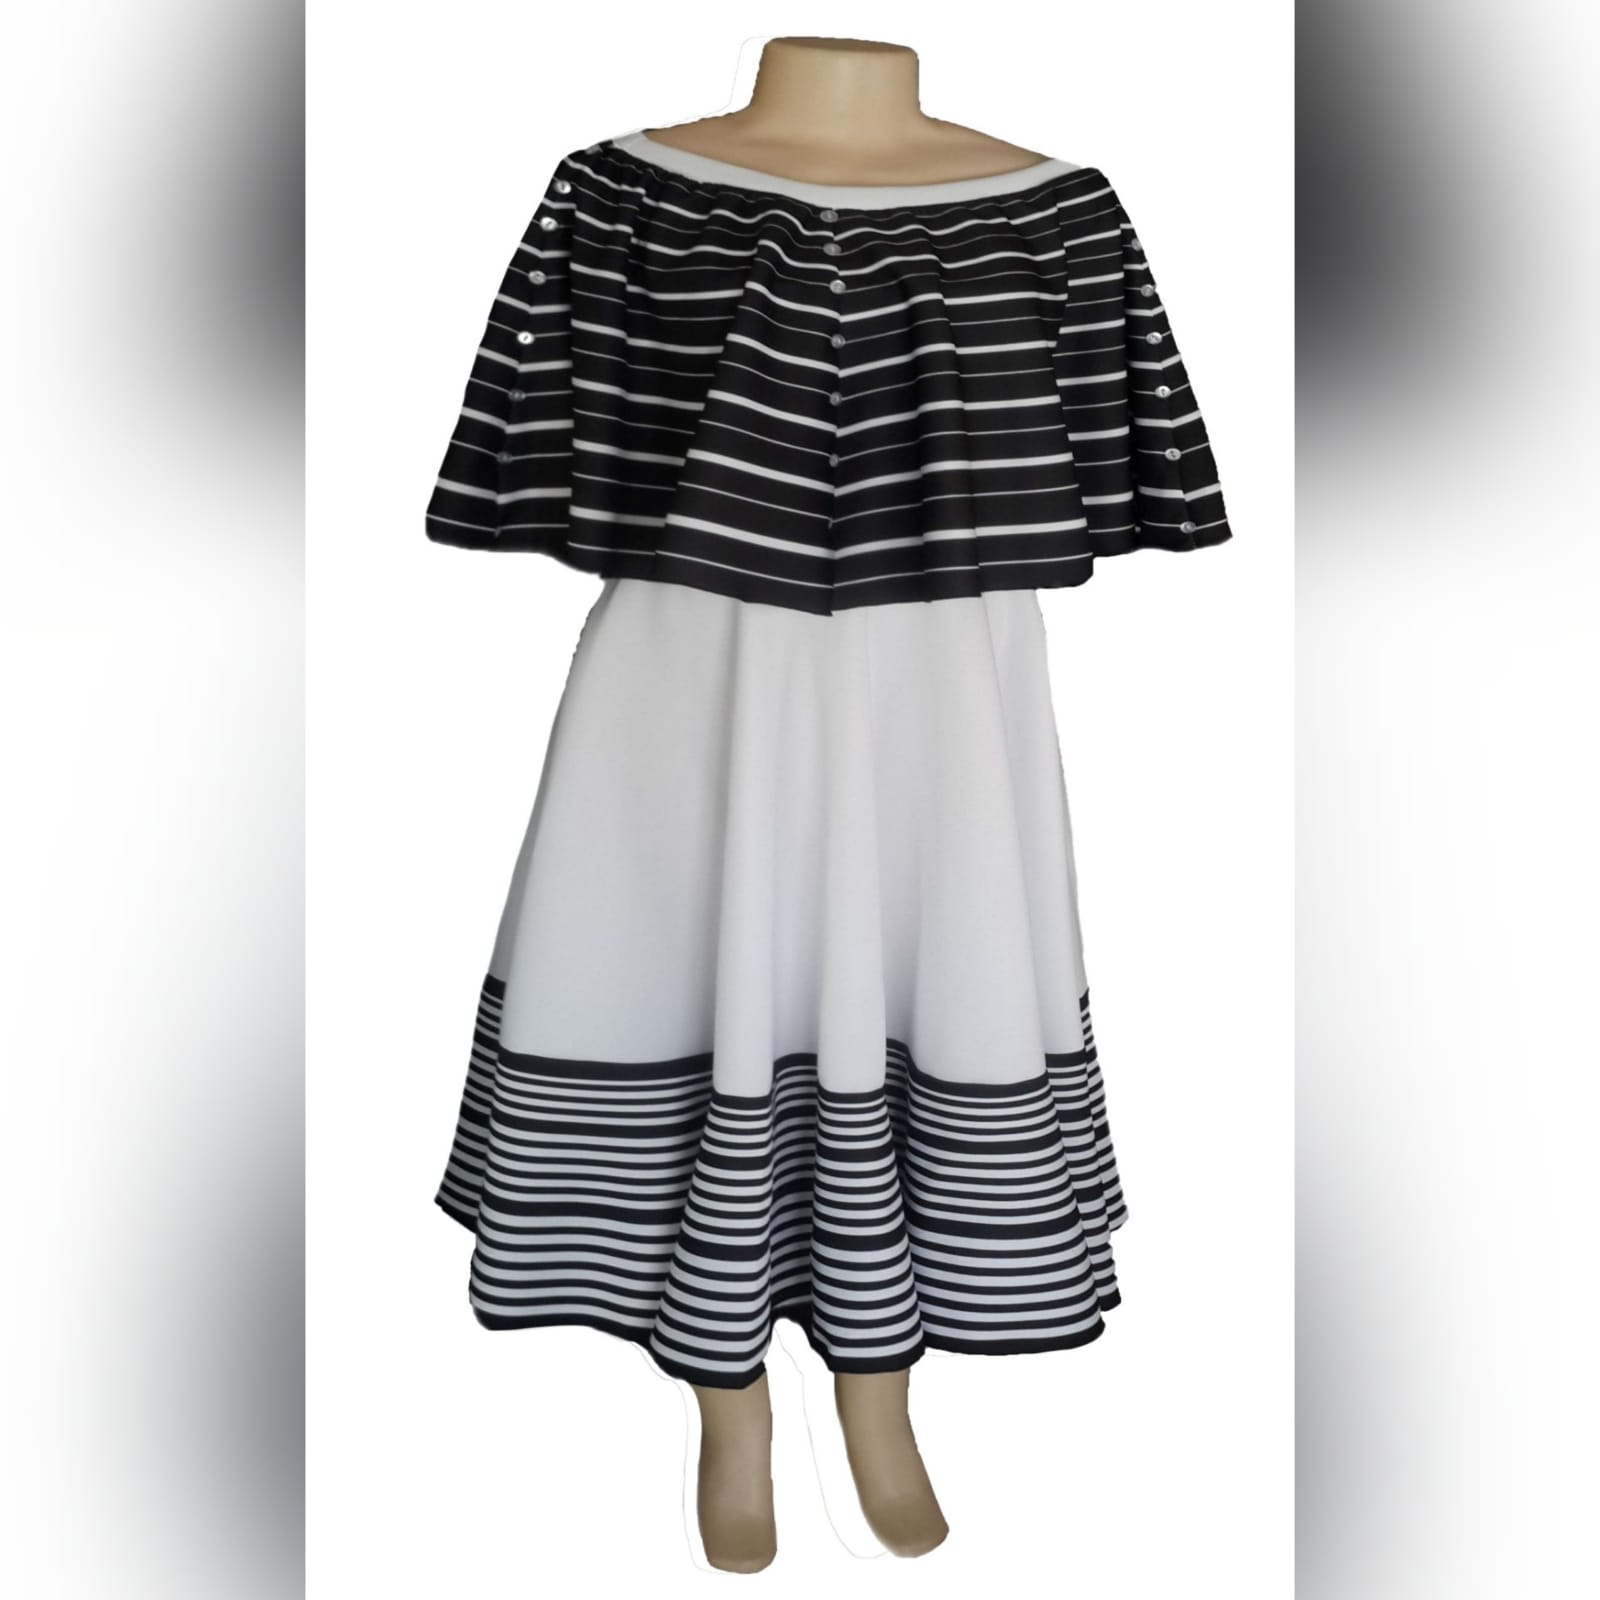 Black and white 2 piece modern traditional dress 6 xhosa black & white 2 piece modern traditional dress. Boob tube dress with a removable poncho